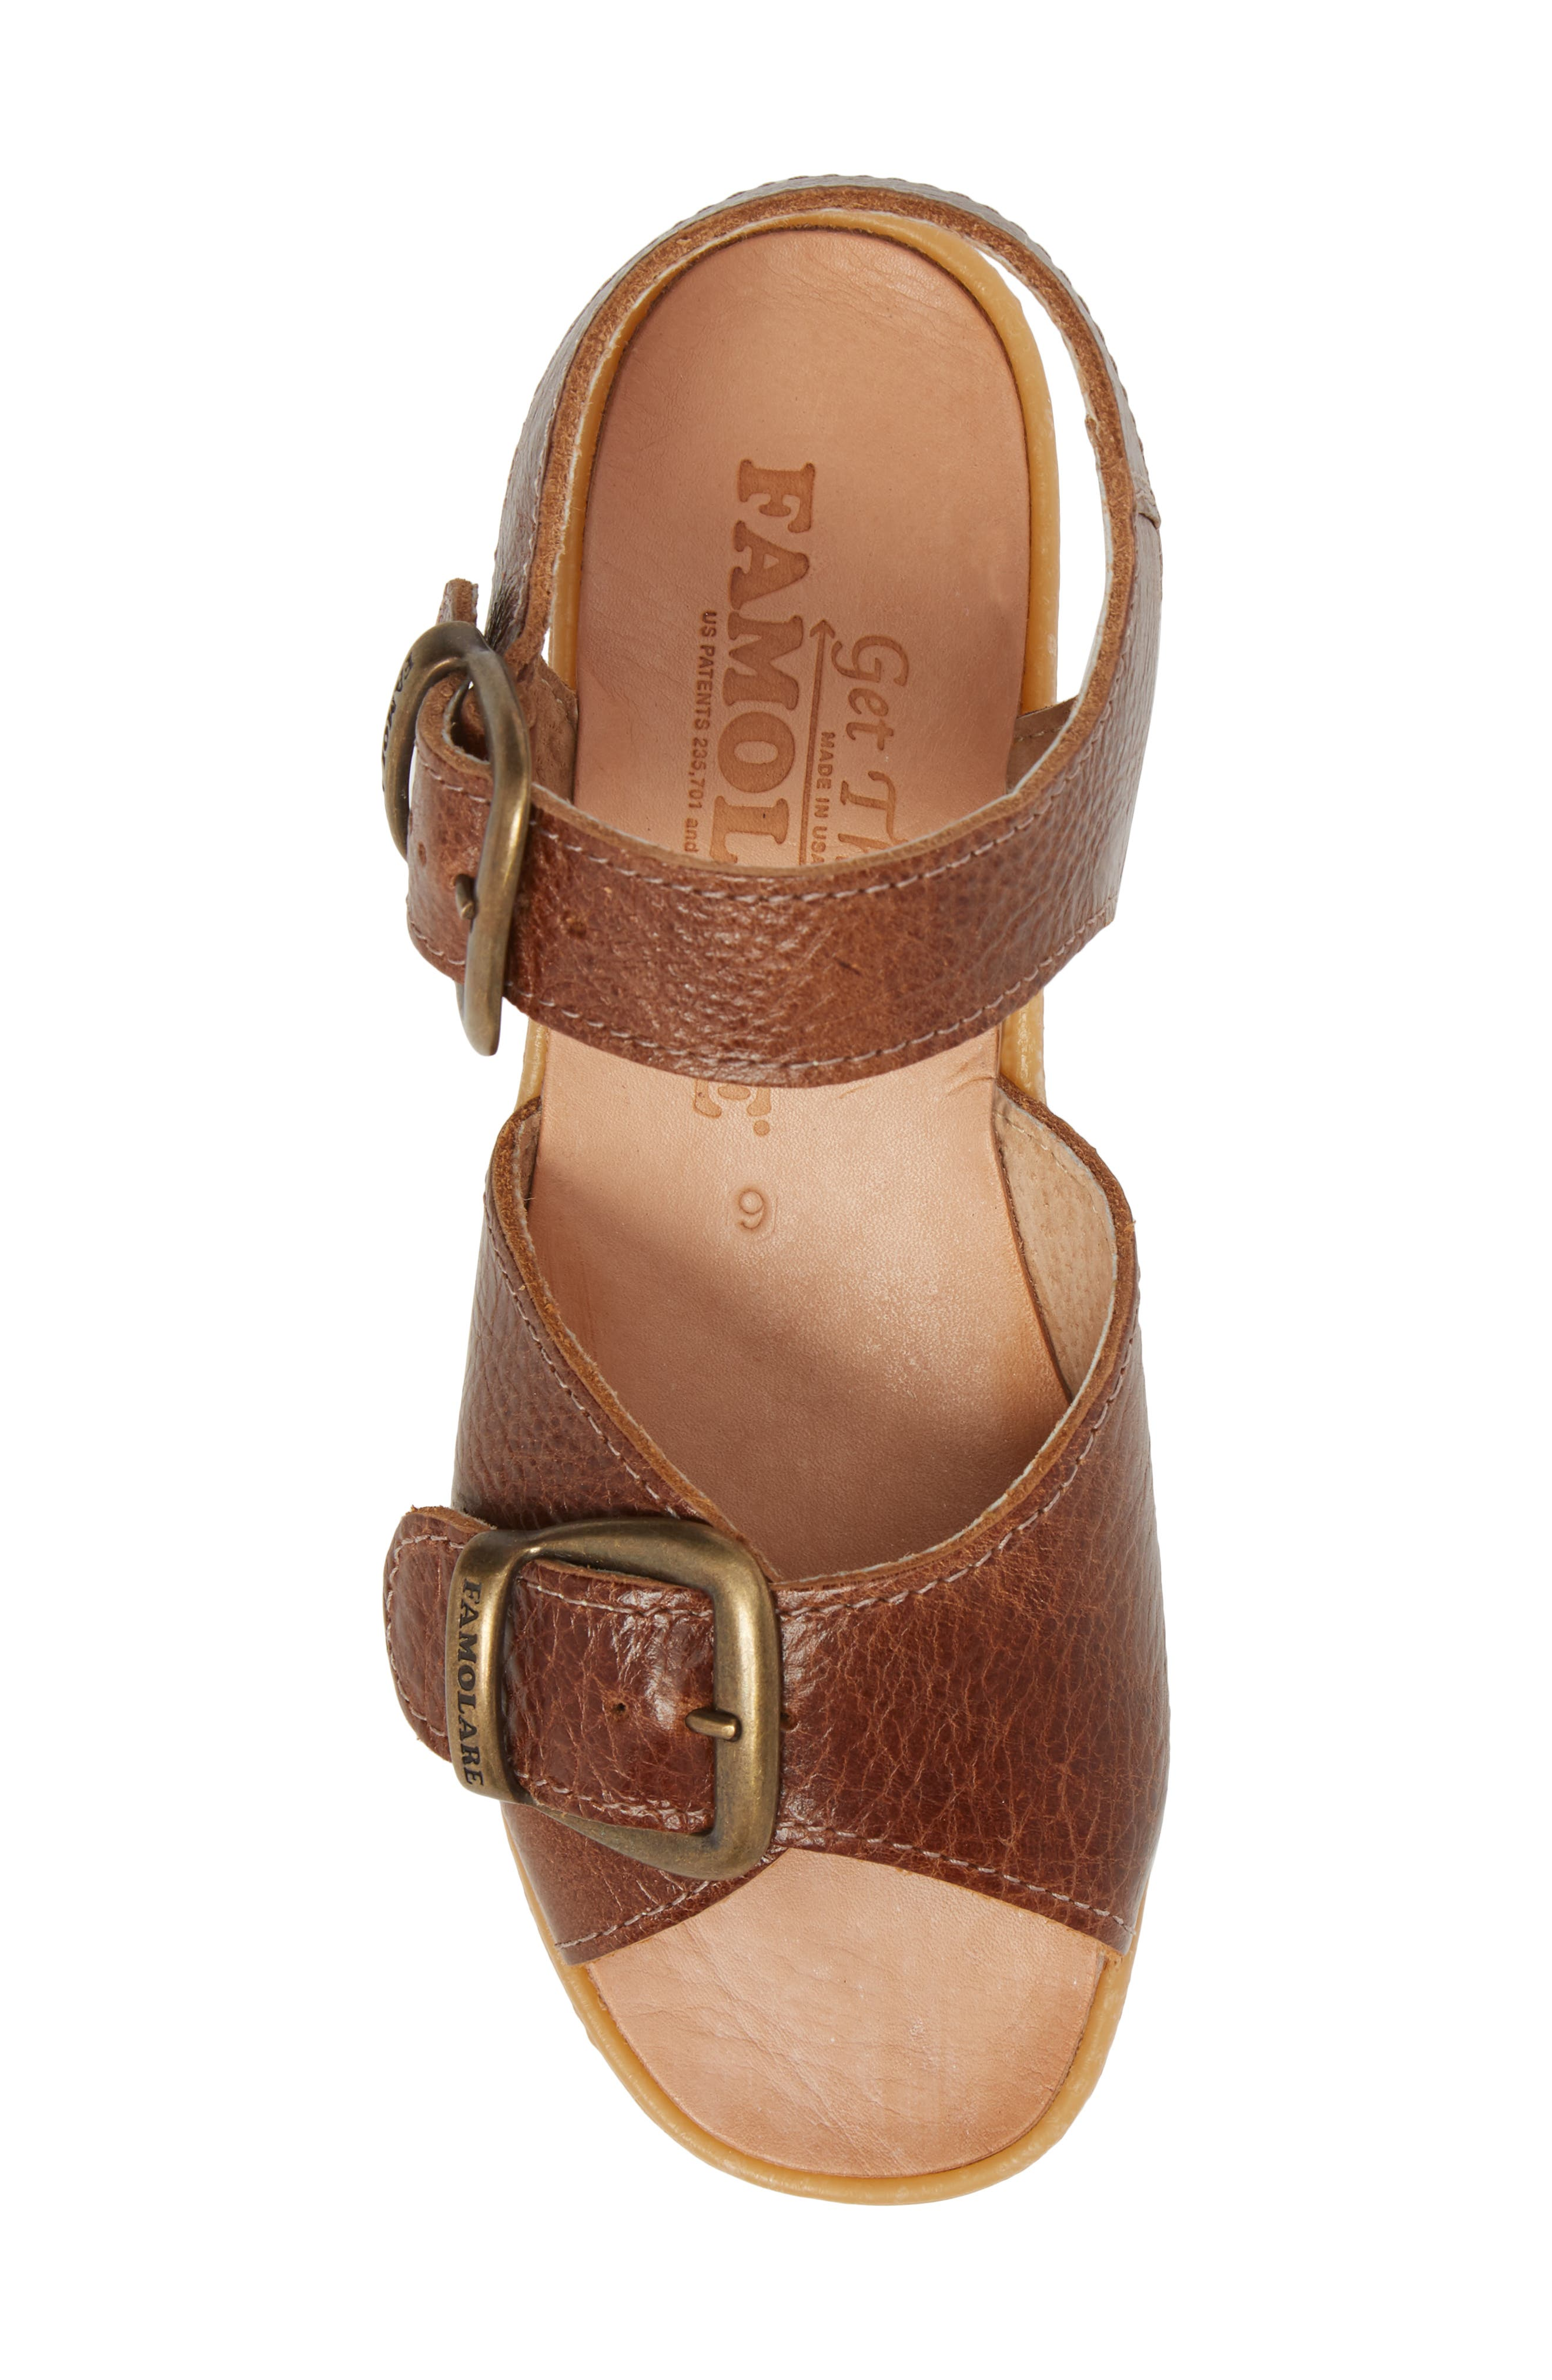 Double Play Platform Sandal,                             Alternate thumbnail 4, color,                             Earth Leather